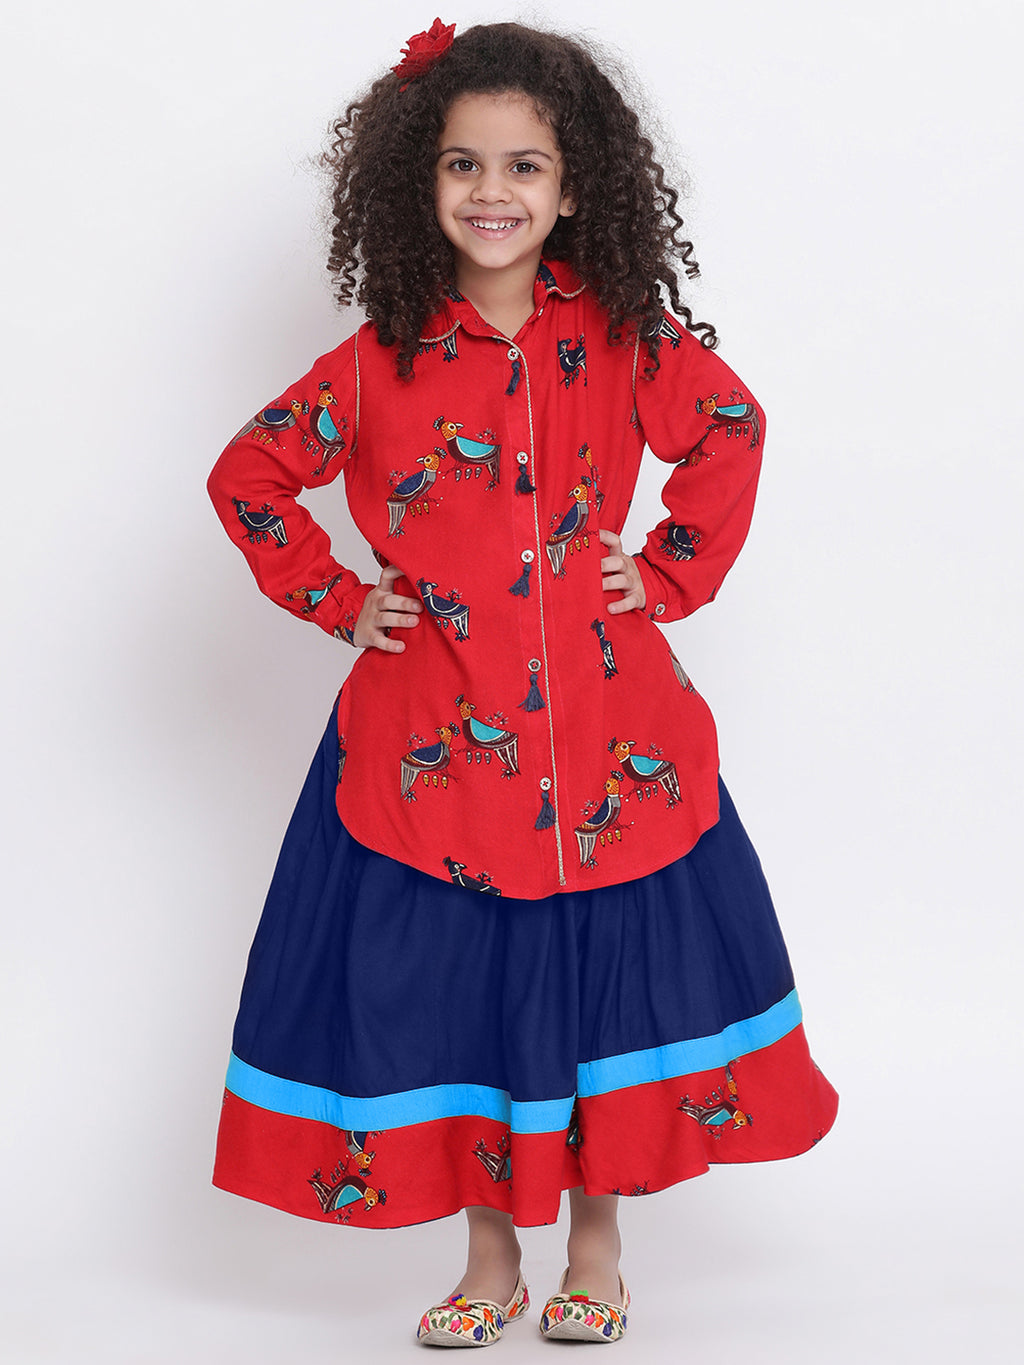 Tanika 1 Skirt with shirt dress for Girls